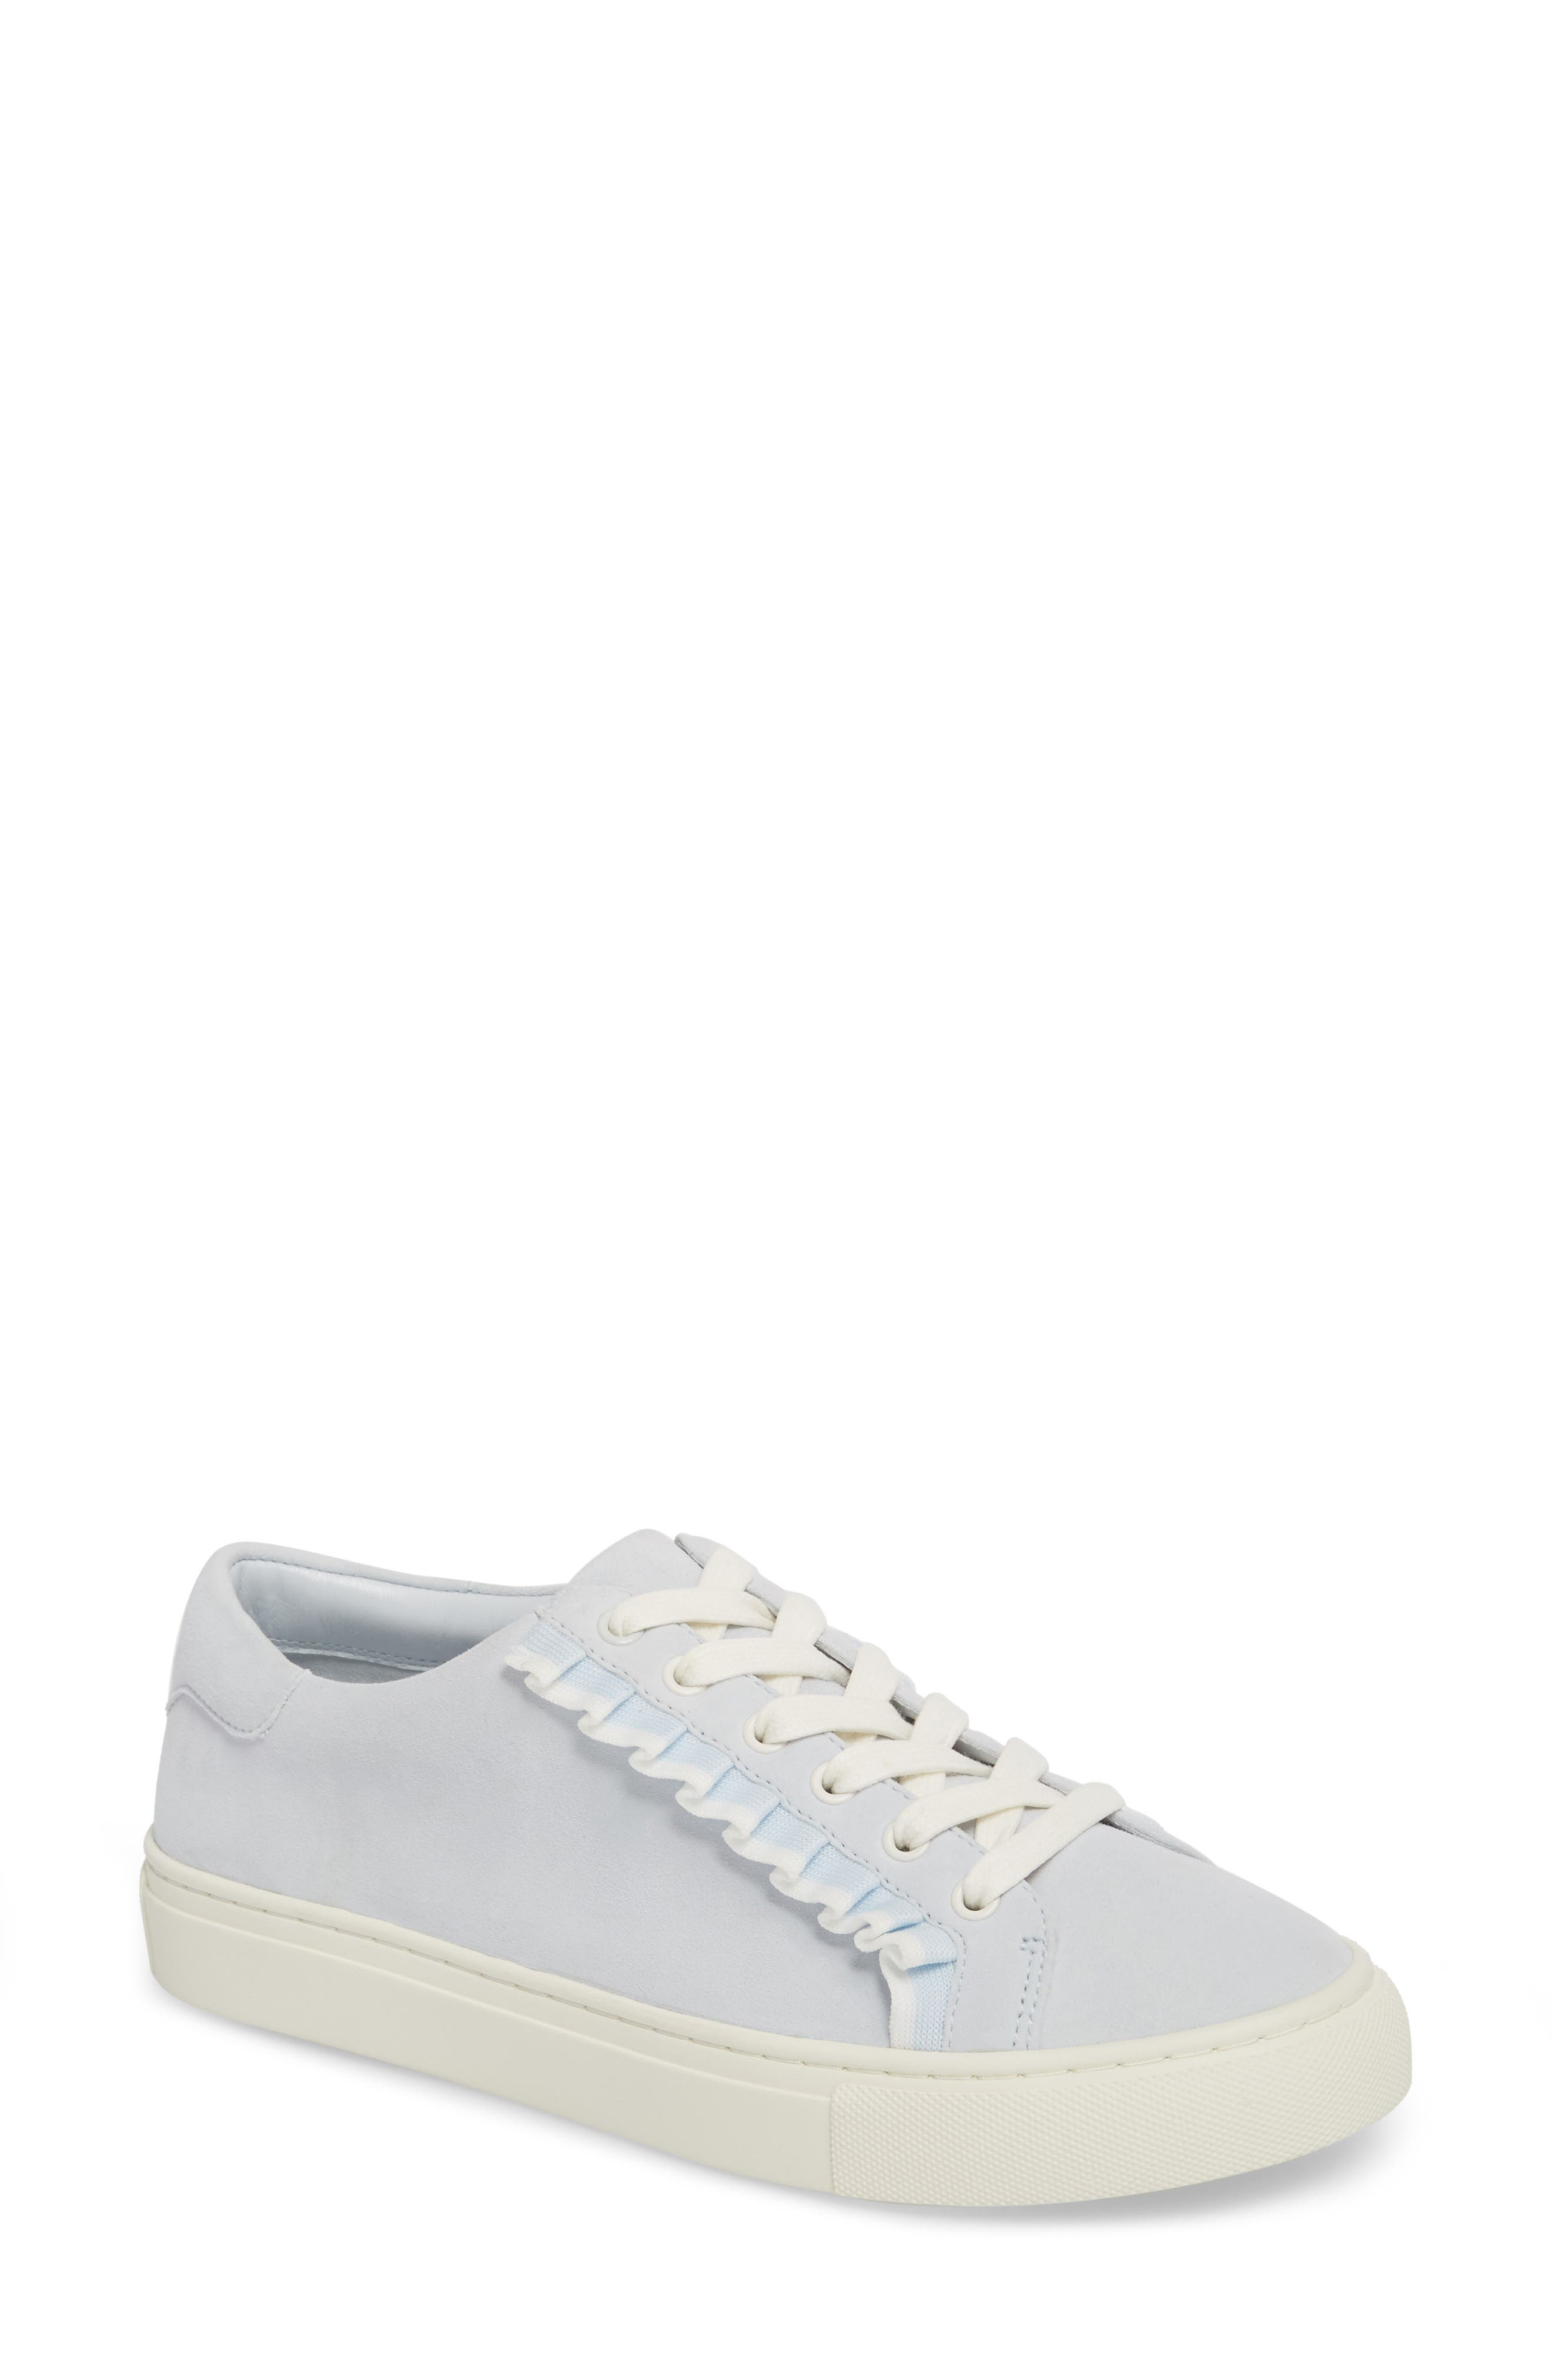 Ruffle Sneaker,                         Main,                         color, 401